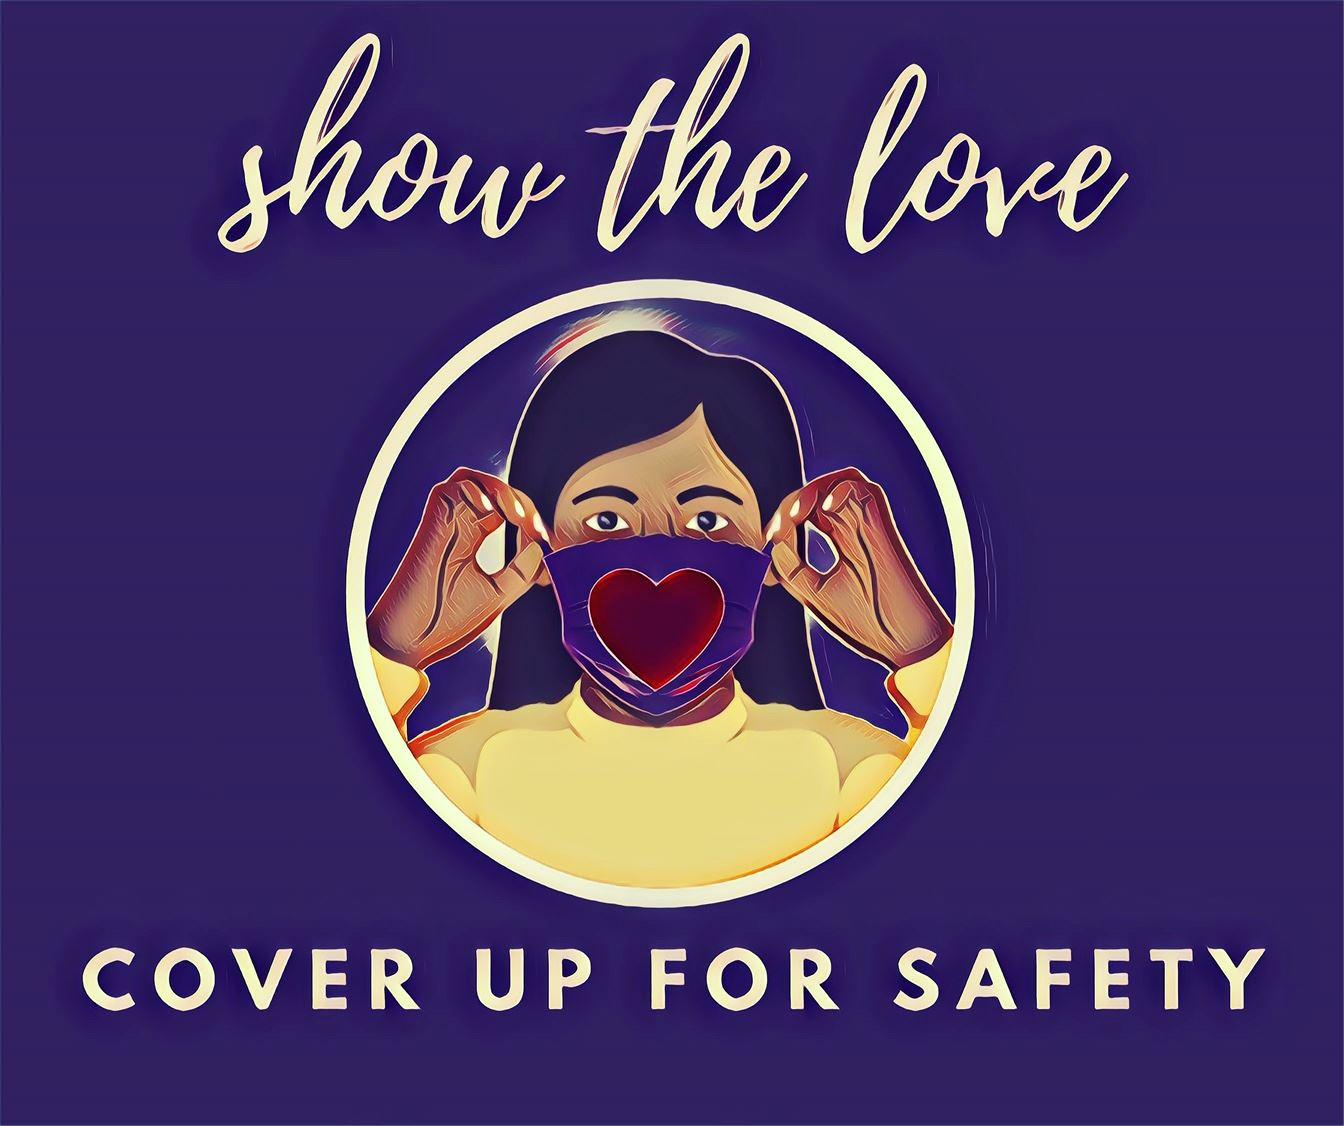 Show the Love (Wear a Mask) graphic